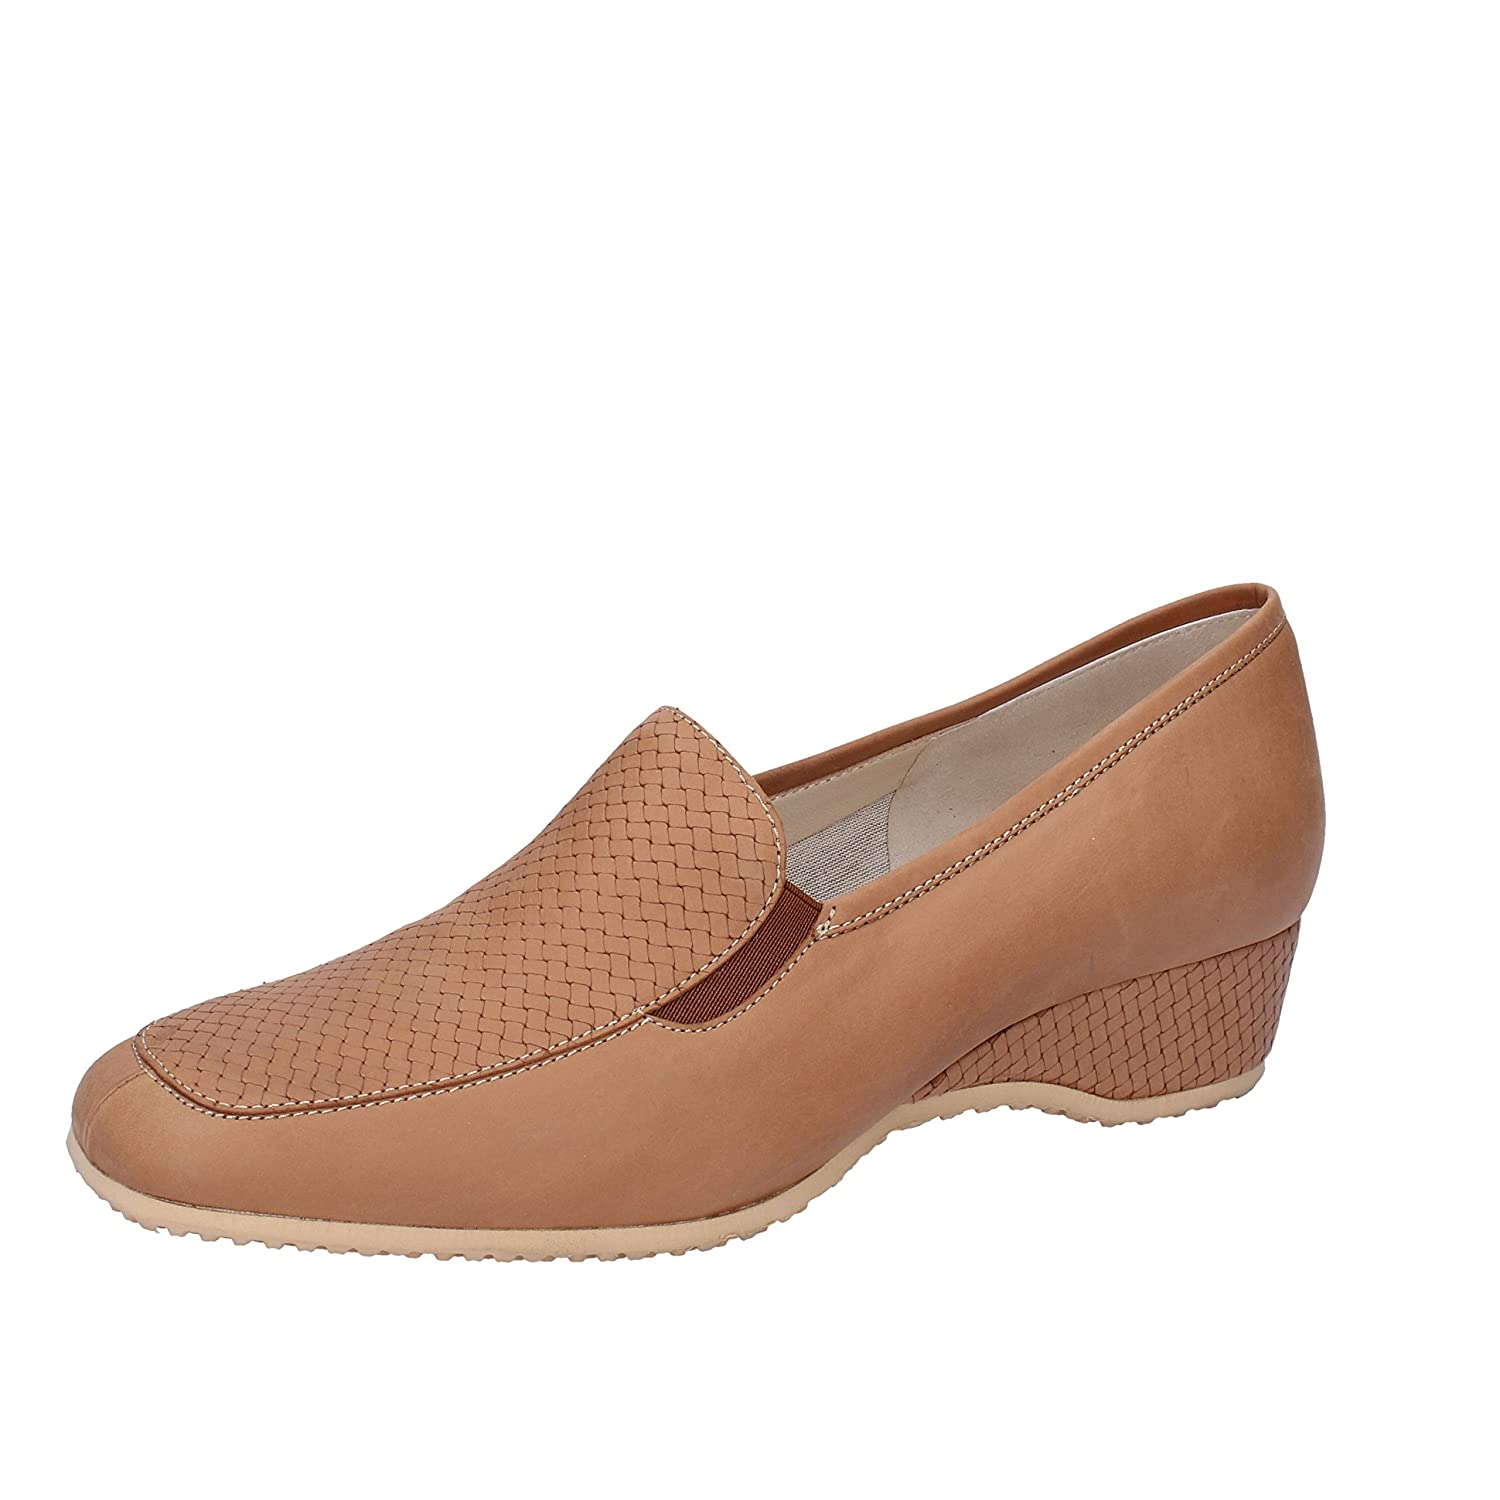 COMODISSIMA Loafers-Shoes Womens Leather Brown